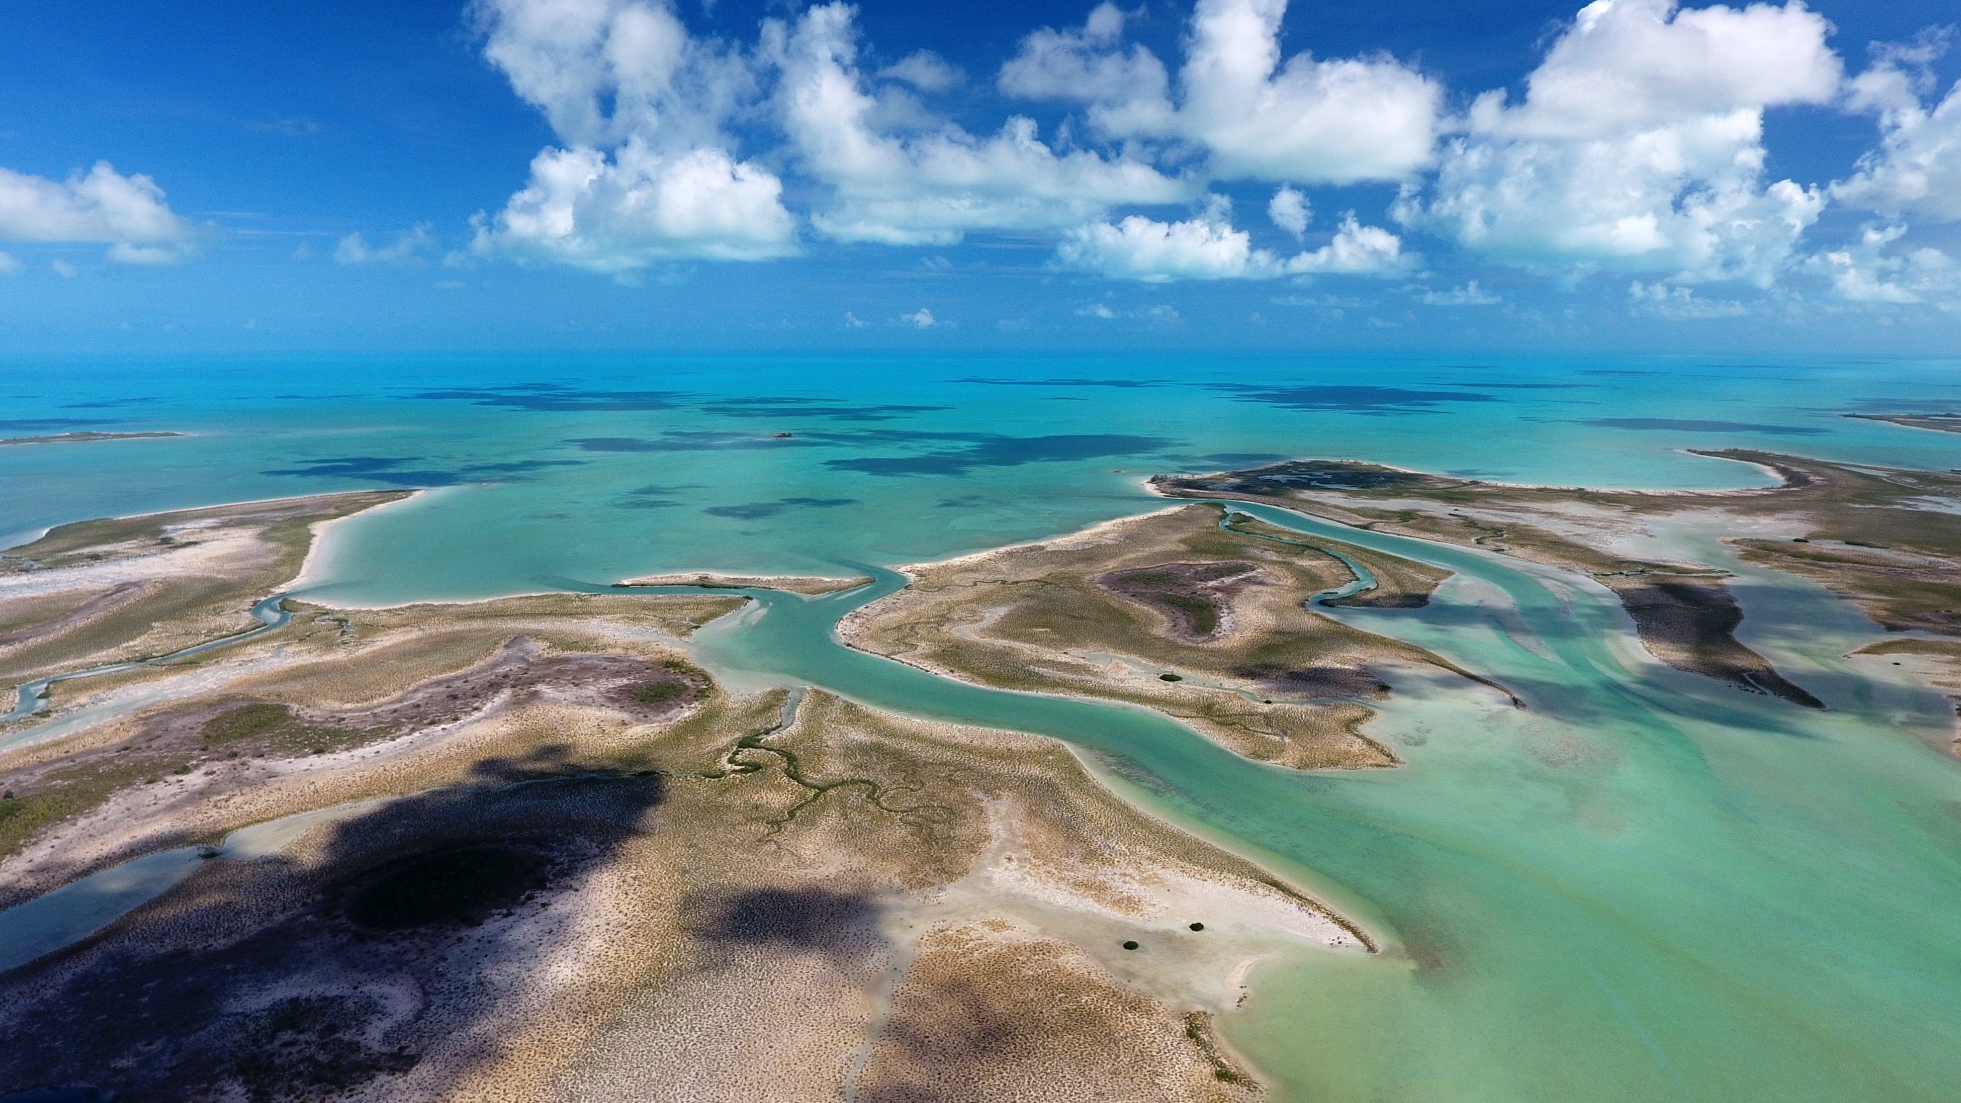 Andros Island - Bahamas - Photo by Michael Scholl - © Save Our Seas Foundation Copyright - DJI_0036.jpg